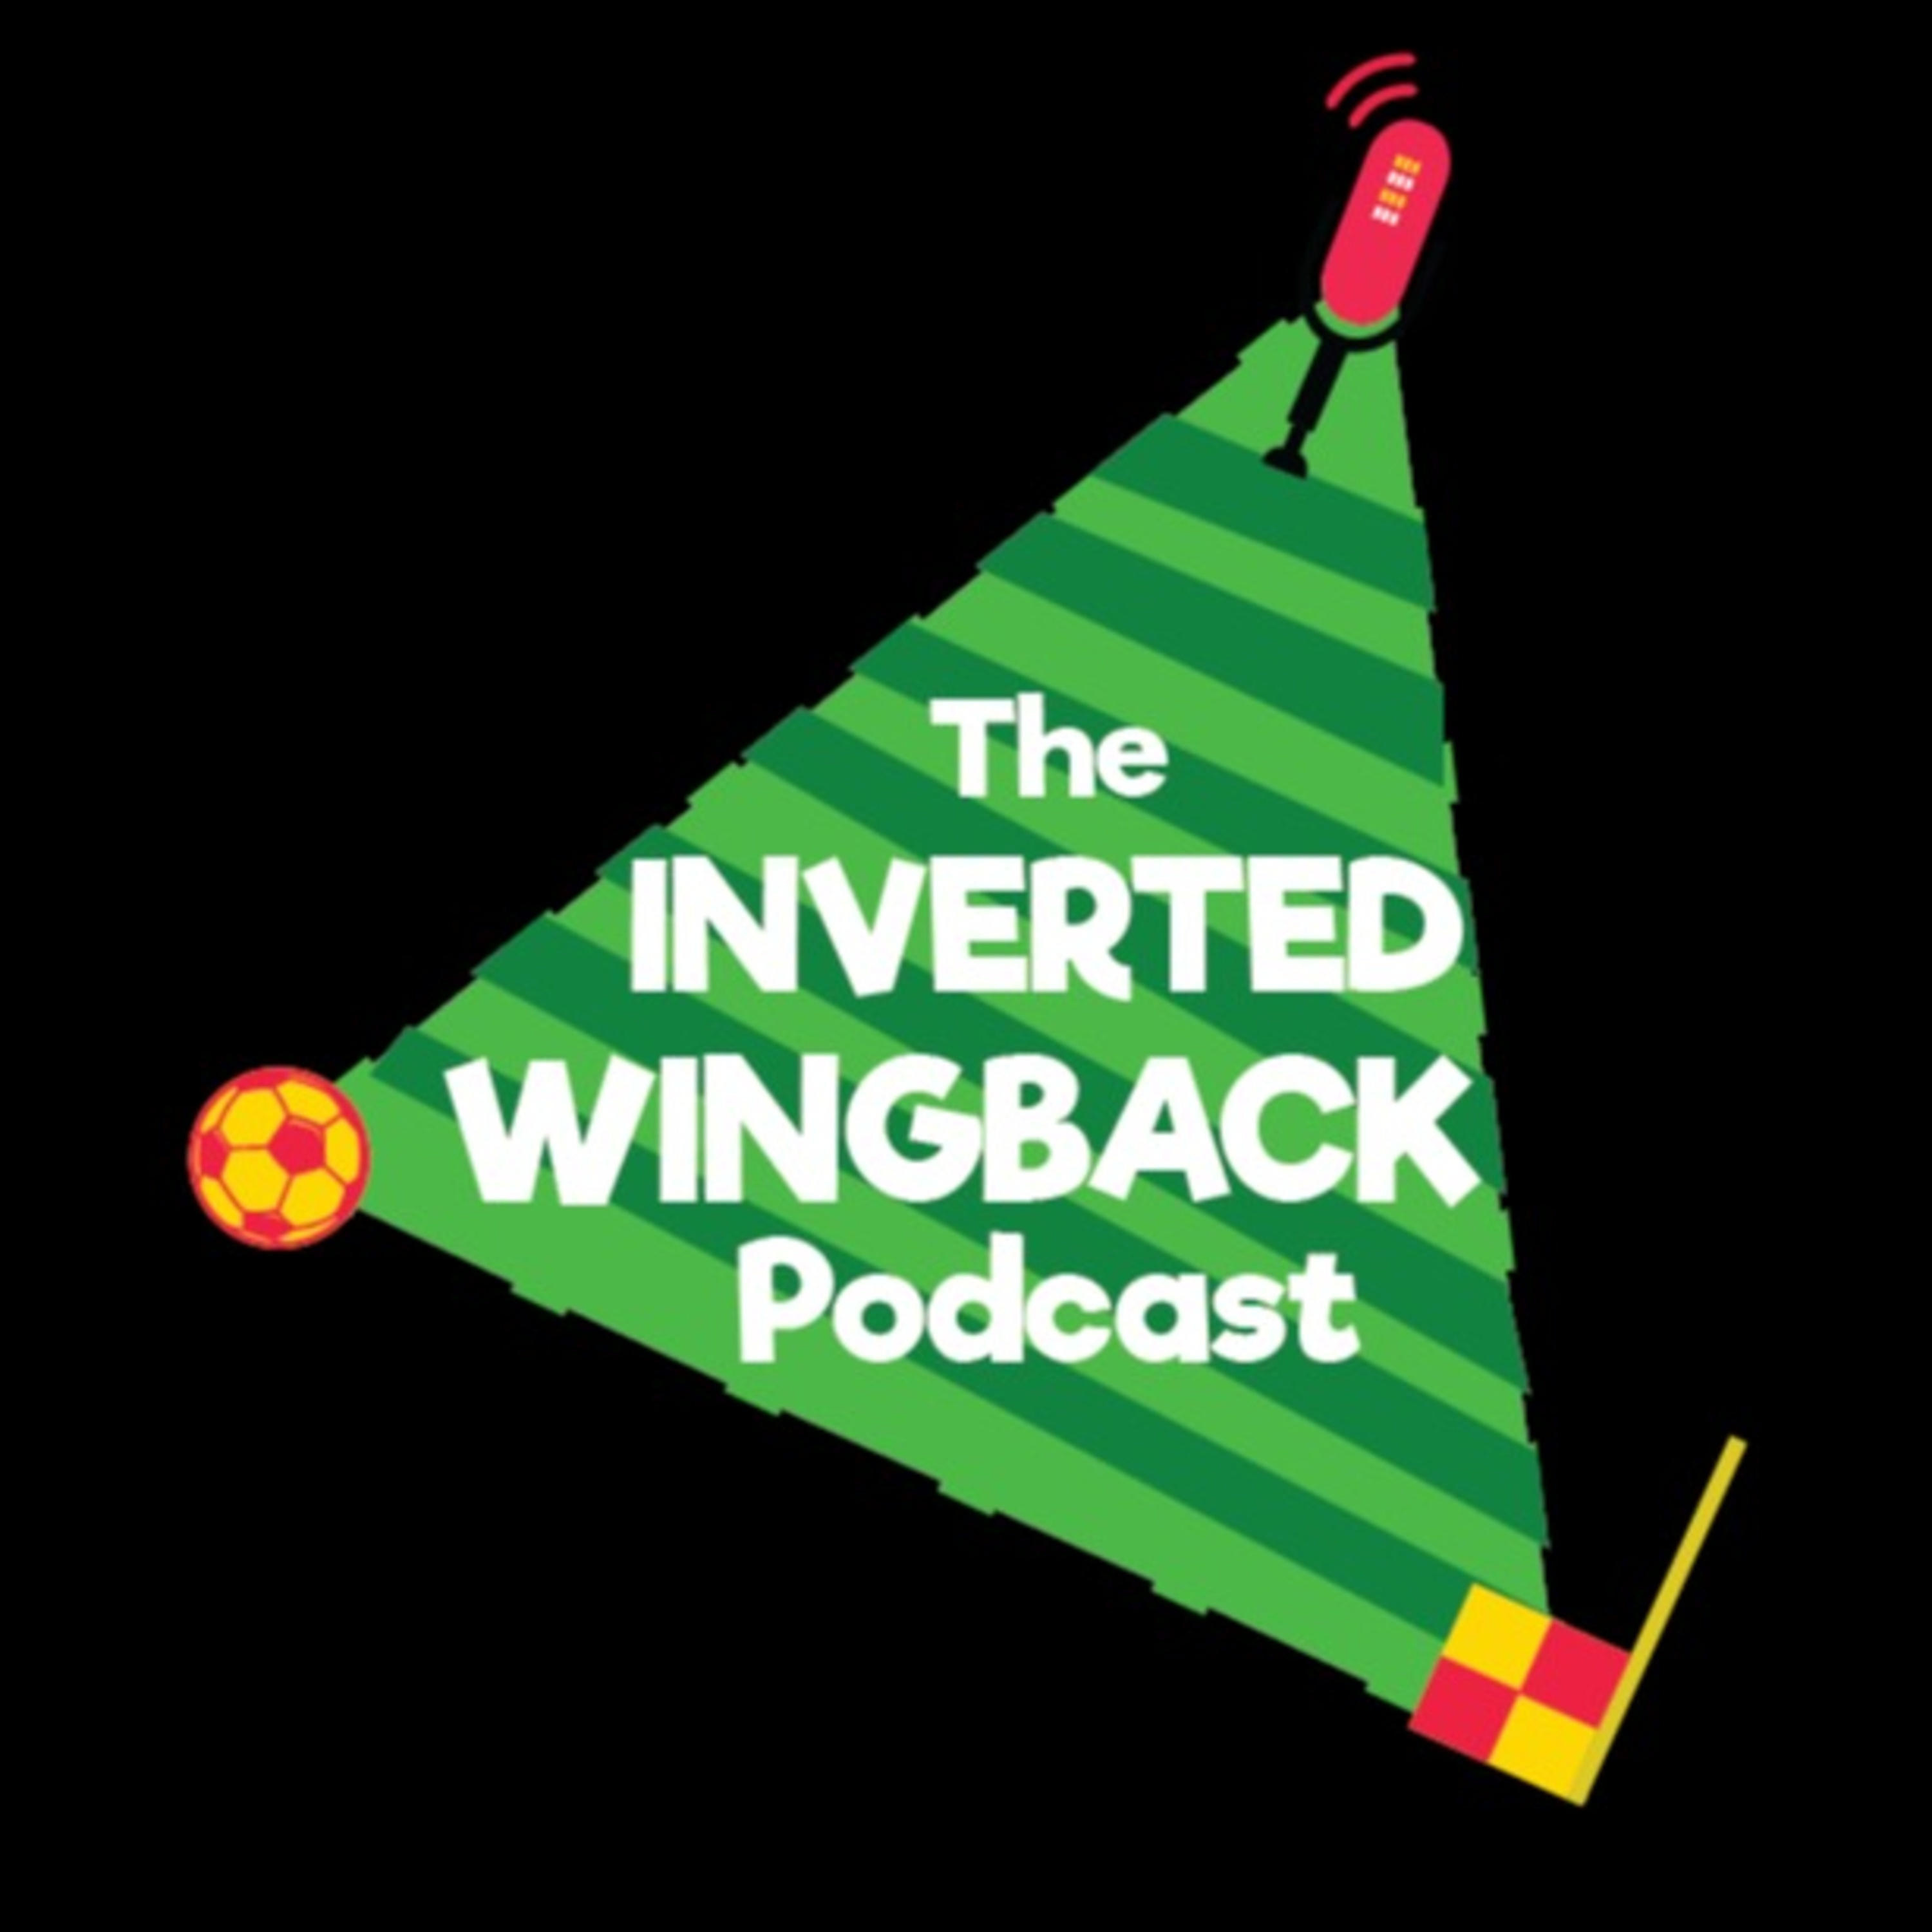 The Inverted Wingback Podcast podcast